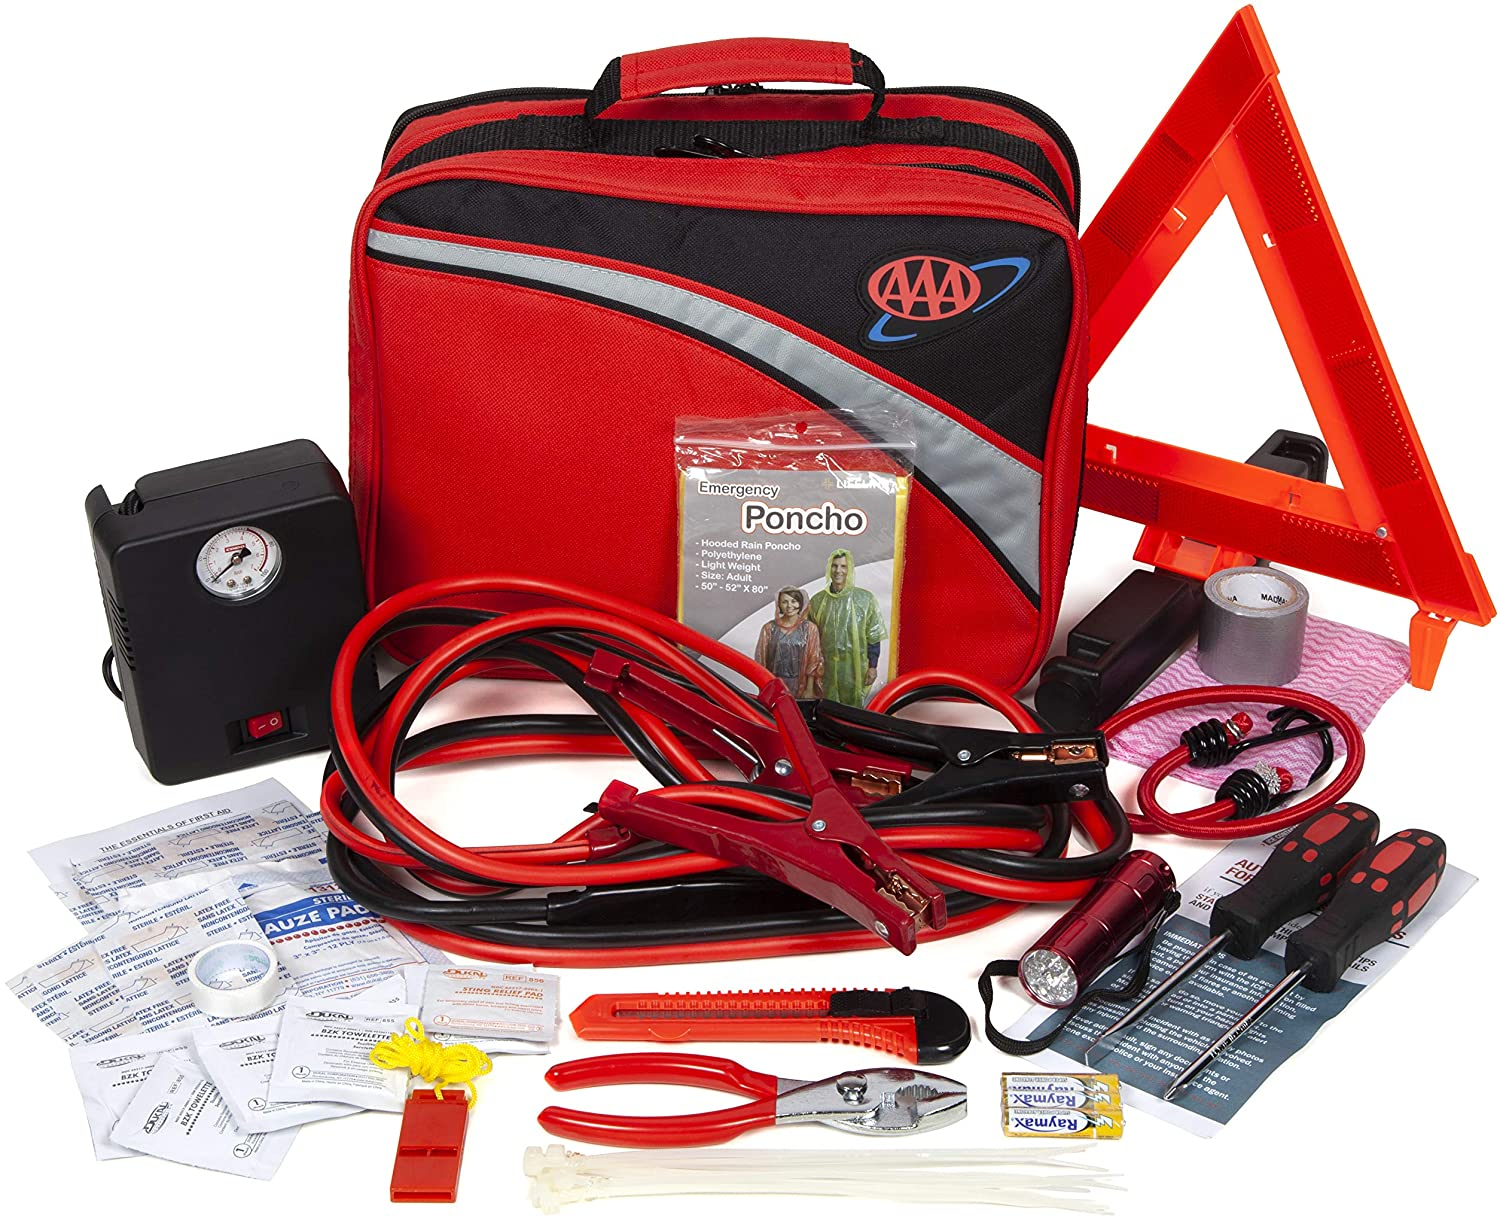 car kits for sale, best roadside emergency kit